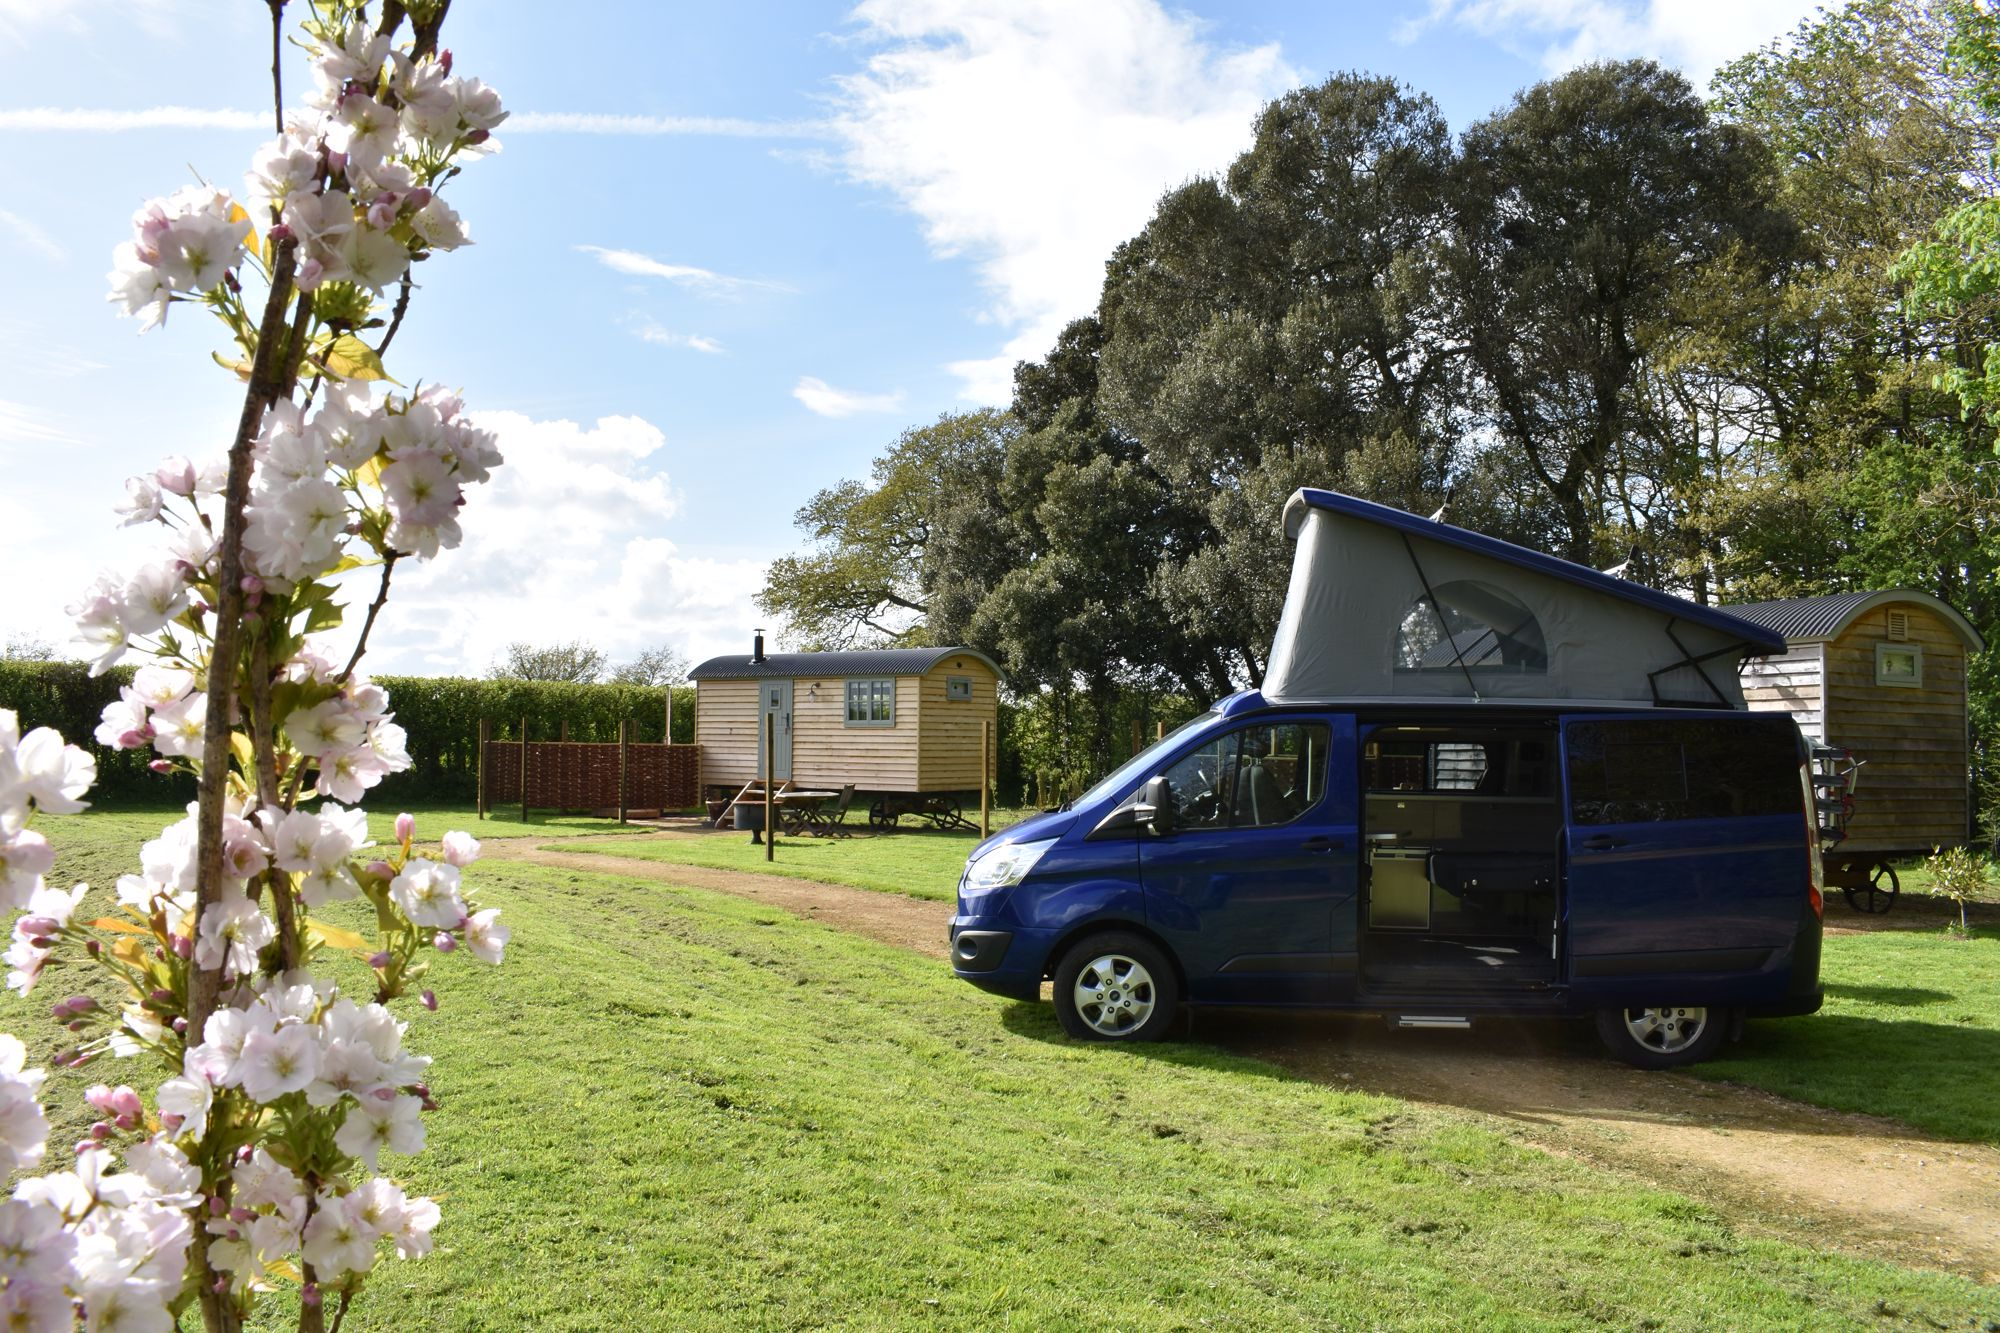 Campervans in South West England holidays at Cool Camping